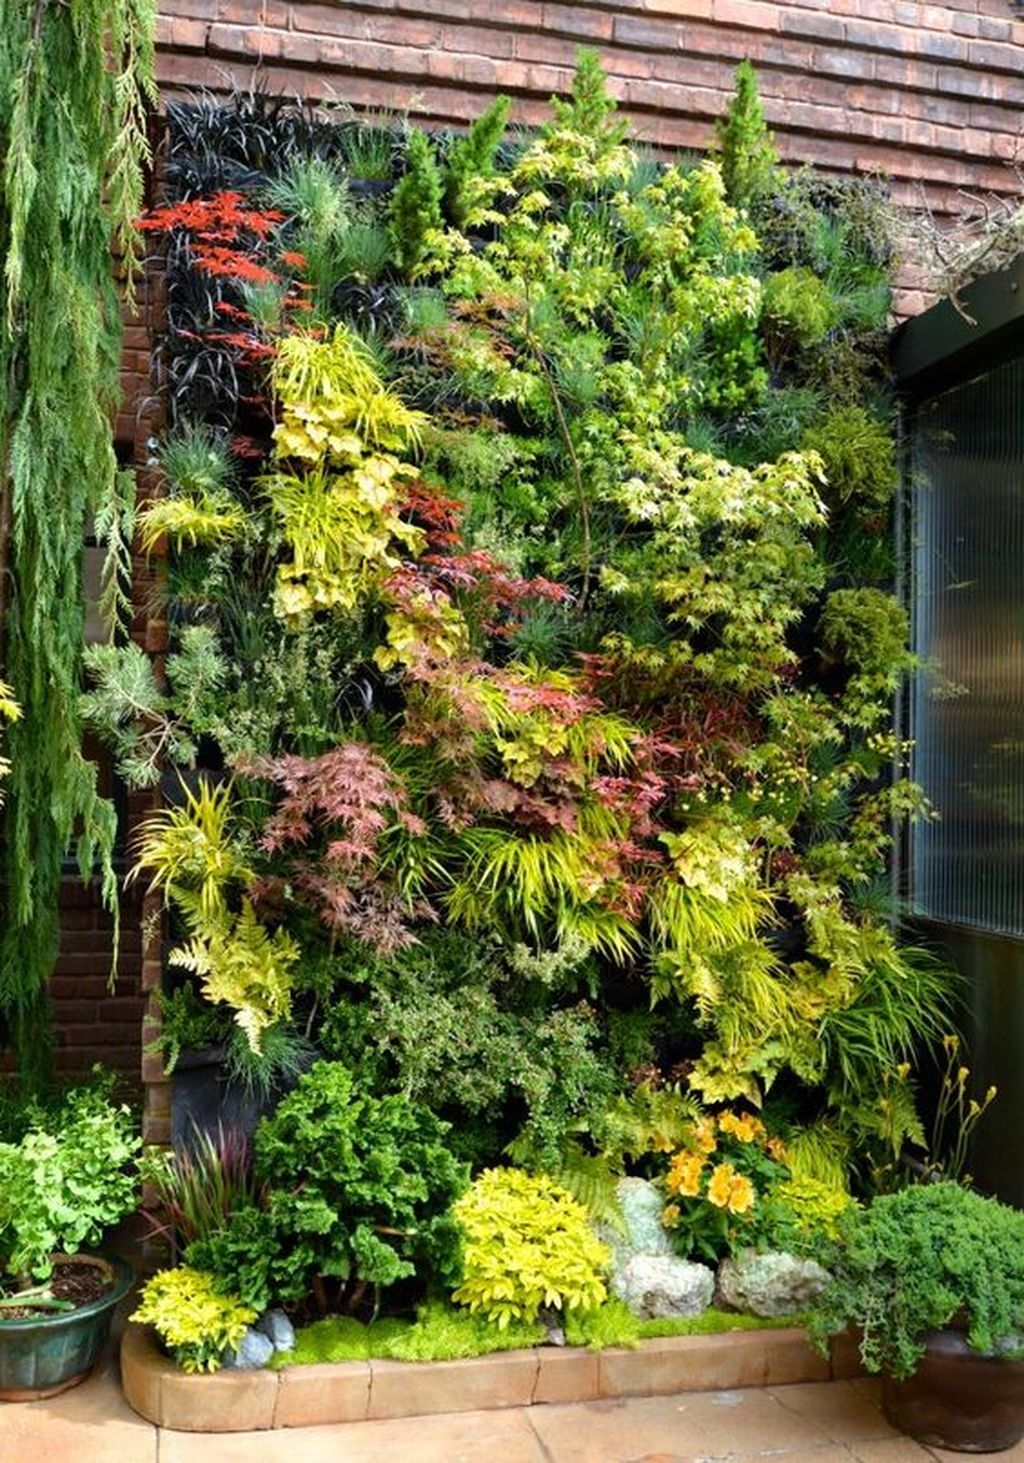 Stunning Living Wall Decor For Indoor And Outdoor 28 Vertical